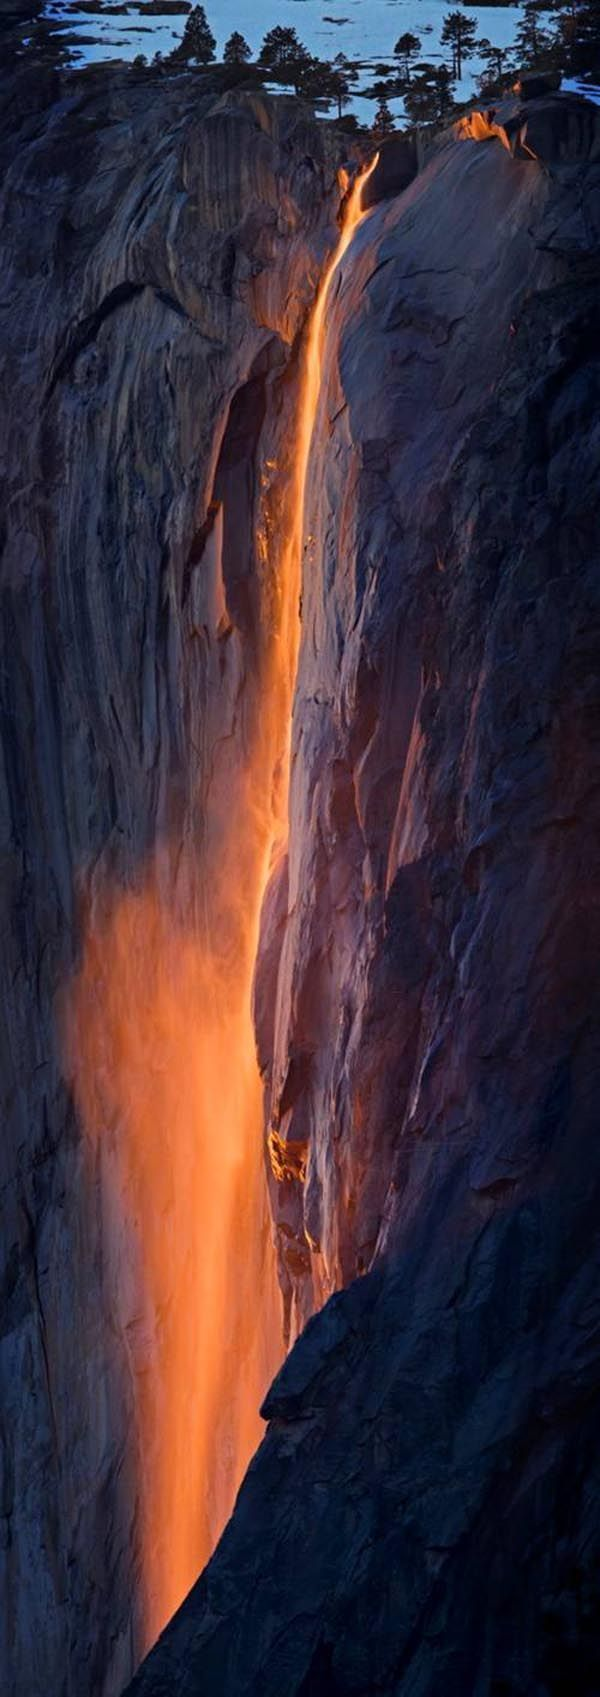 """Lavafall at Yosemite -This is nature's version of the old man-made Yosemite Fire Fall. During the winter in Yosemite, coming off of El Capitan, there is an almost nonexistent waterfall called """"Horsetail Falls."""" Many maps don't even have it marked. During the last two weeks in February, IF there is water trickling over the edge, and IF it is clear at sunset the setting sun will turn this waterfall into a stream of molten fire. The waterfall lights up like molten lava due t"""